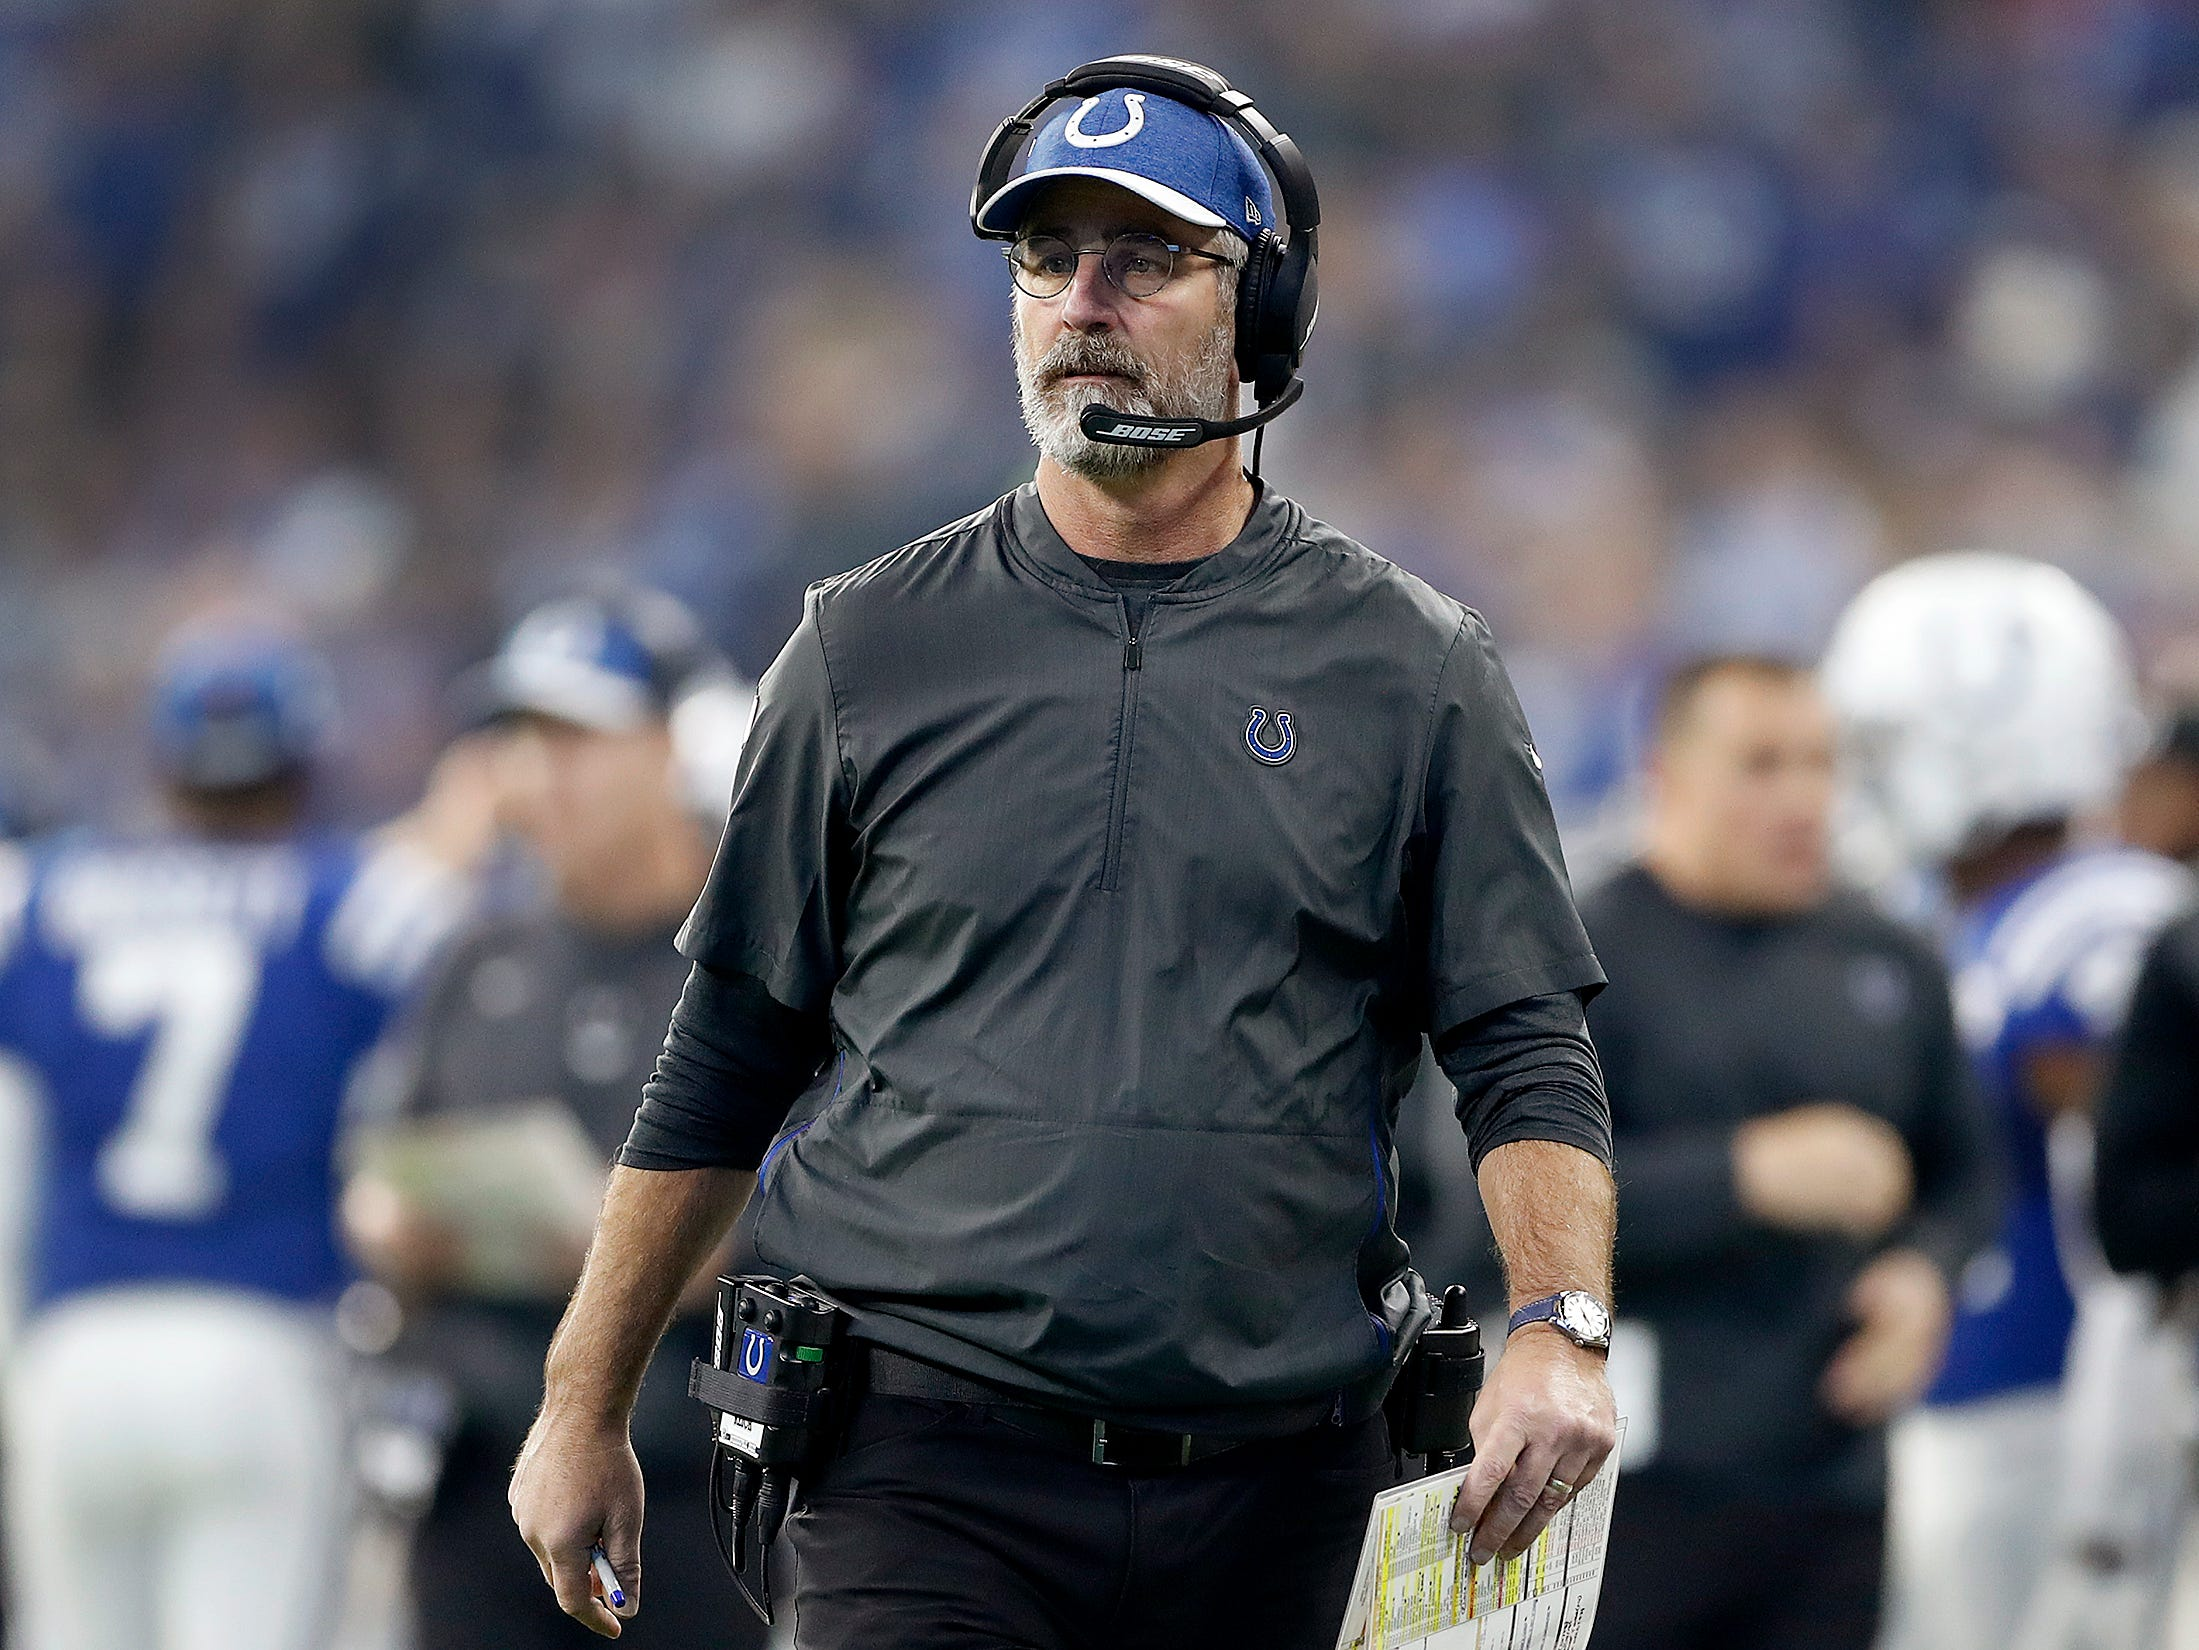 Indianapolis Colts head coach Frank Reich in the first half of their game at Lucas Oil Stadium on Sunday, Dec. 16, 2018.